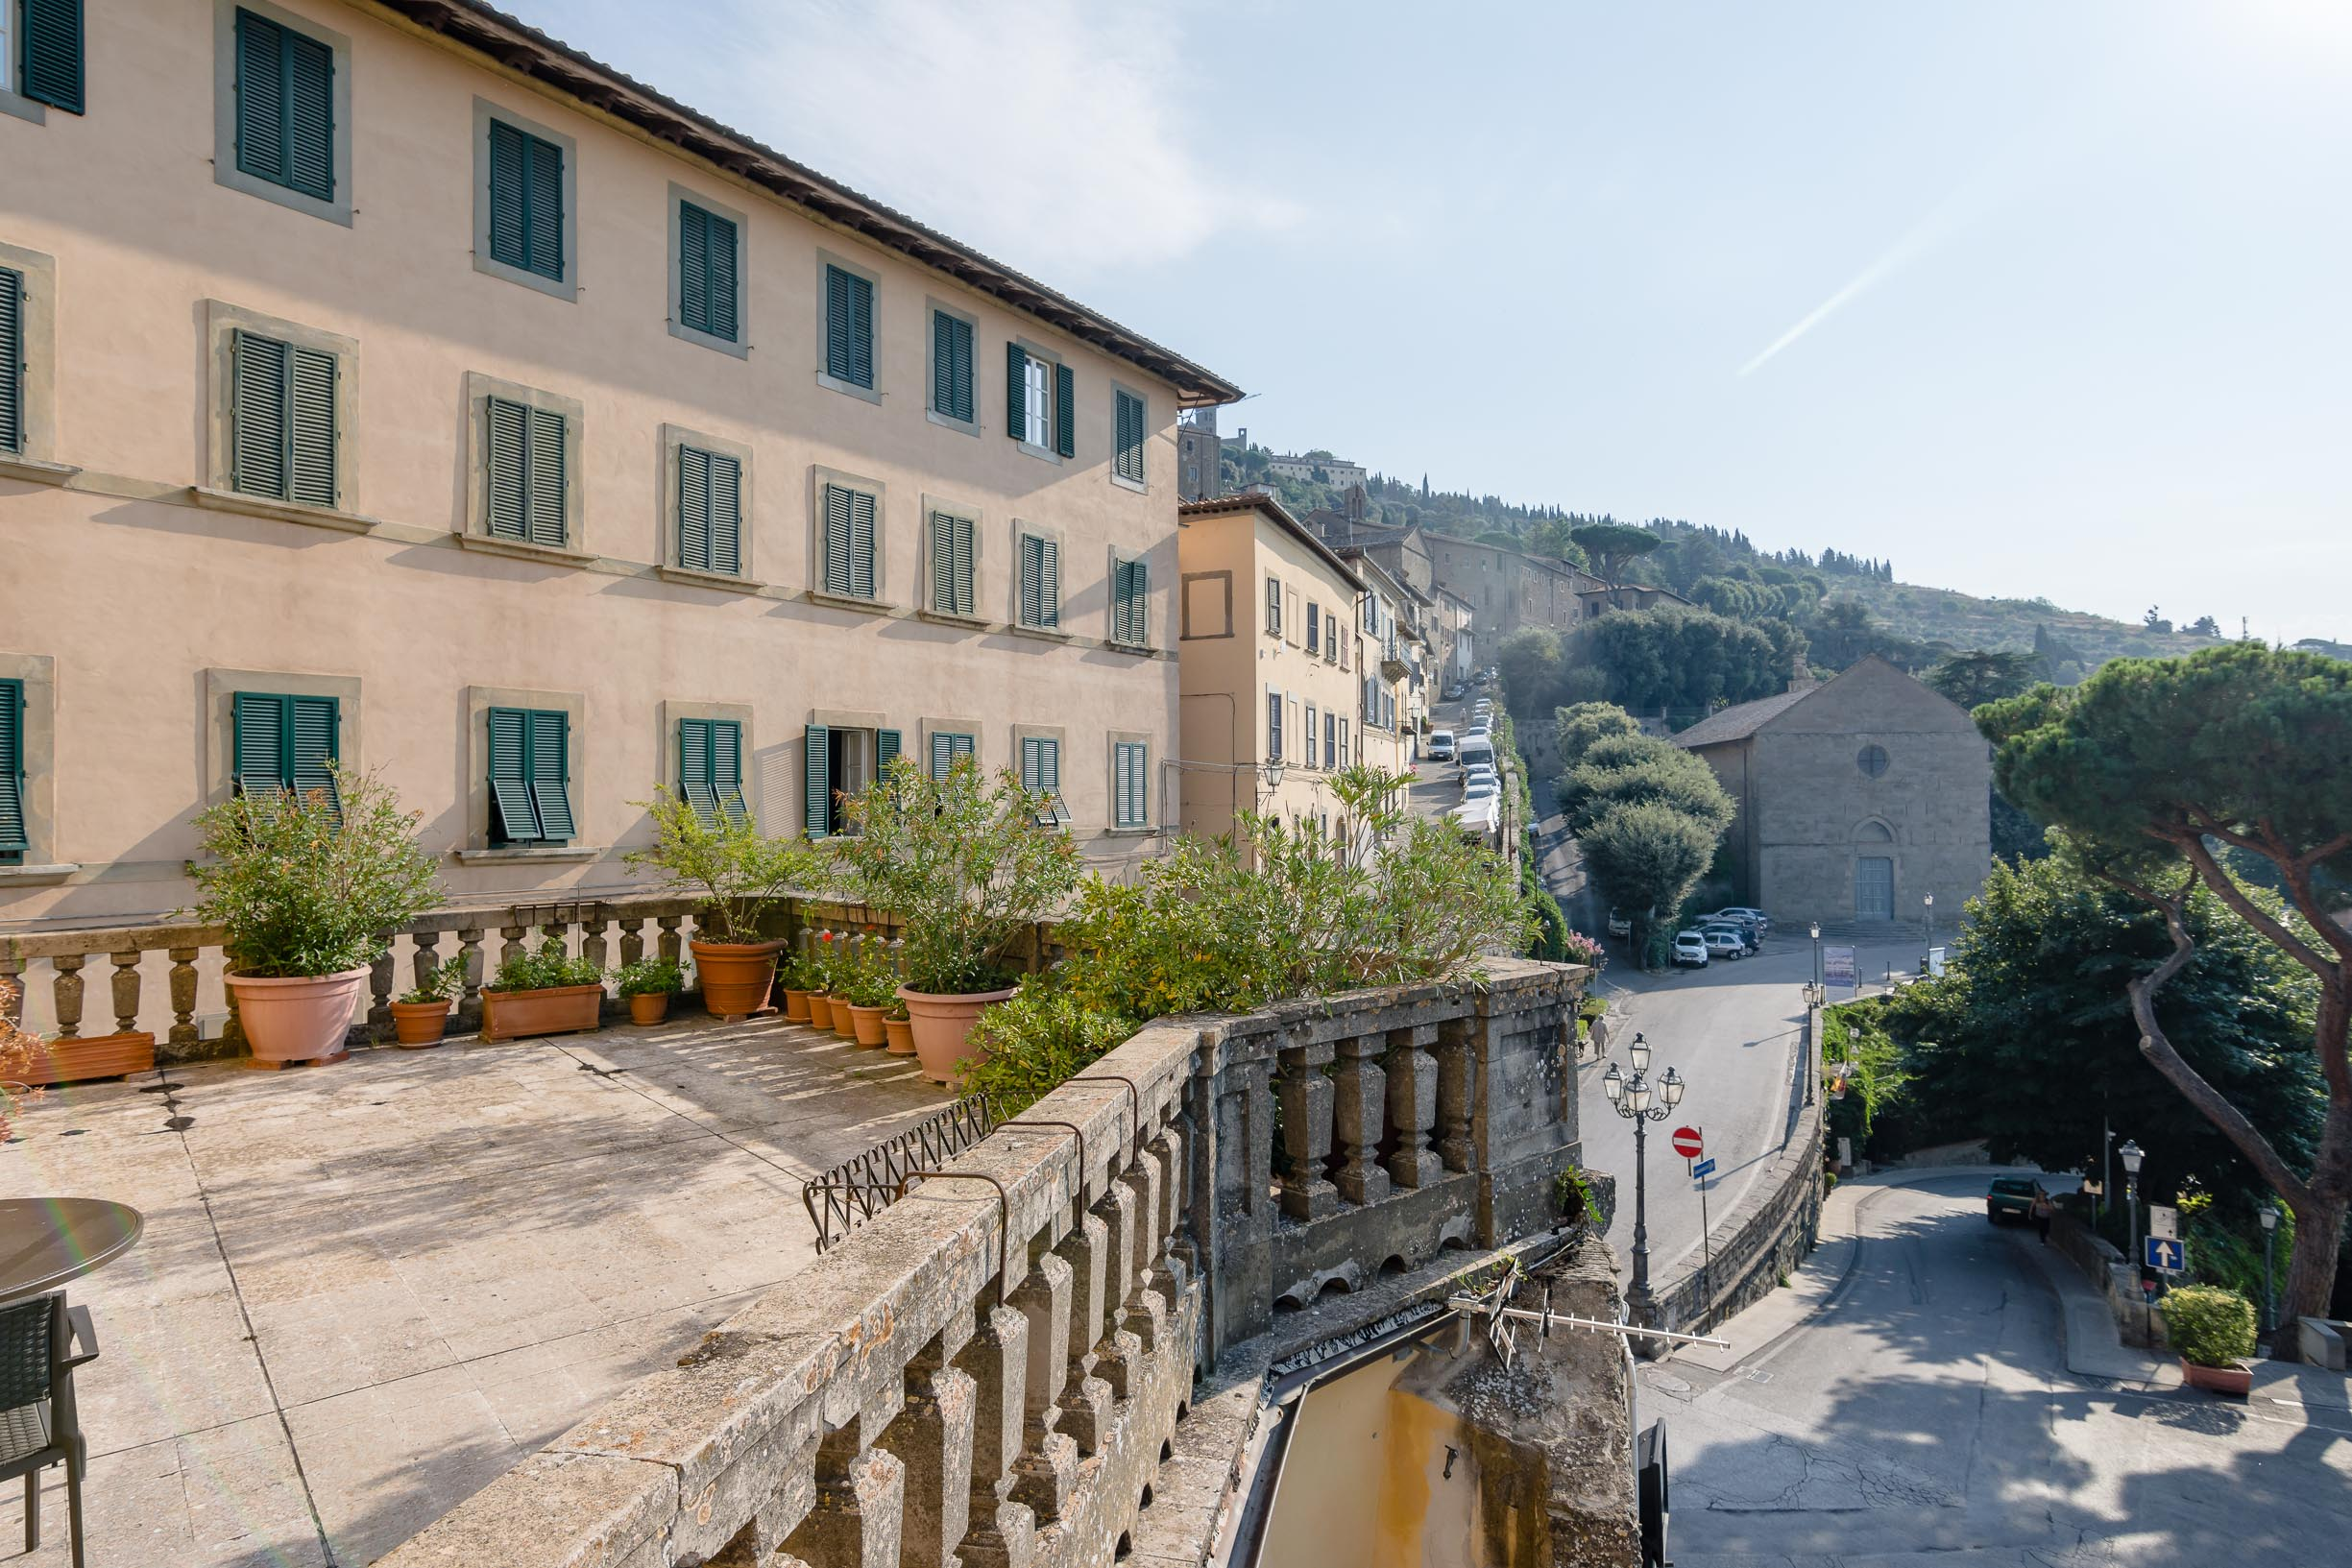 Apartment in Cortona of over 230sqm with terrace